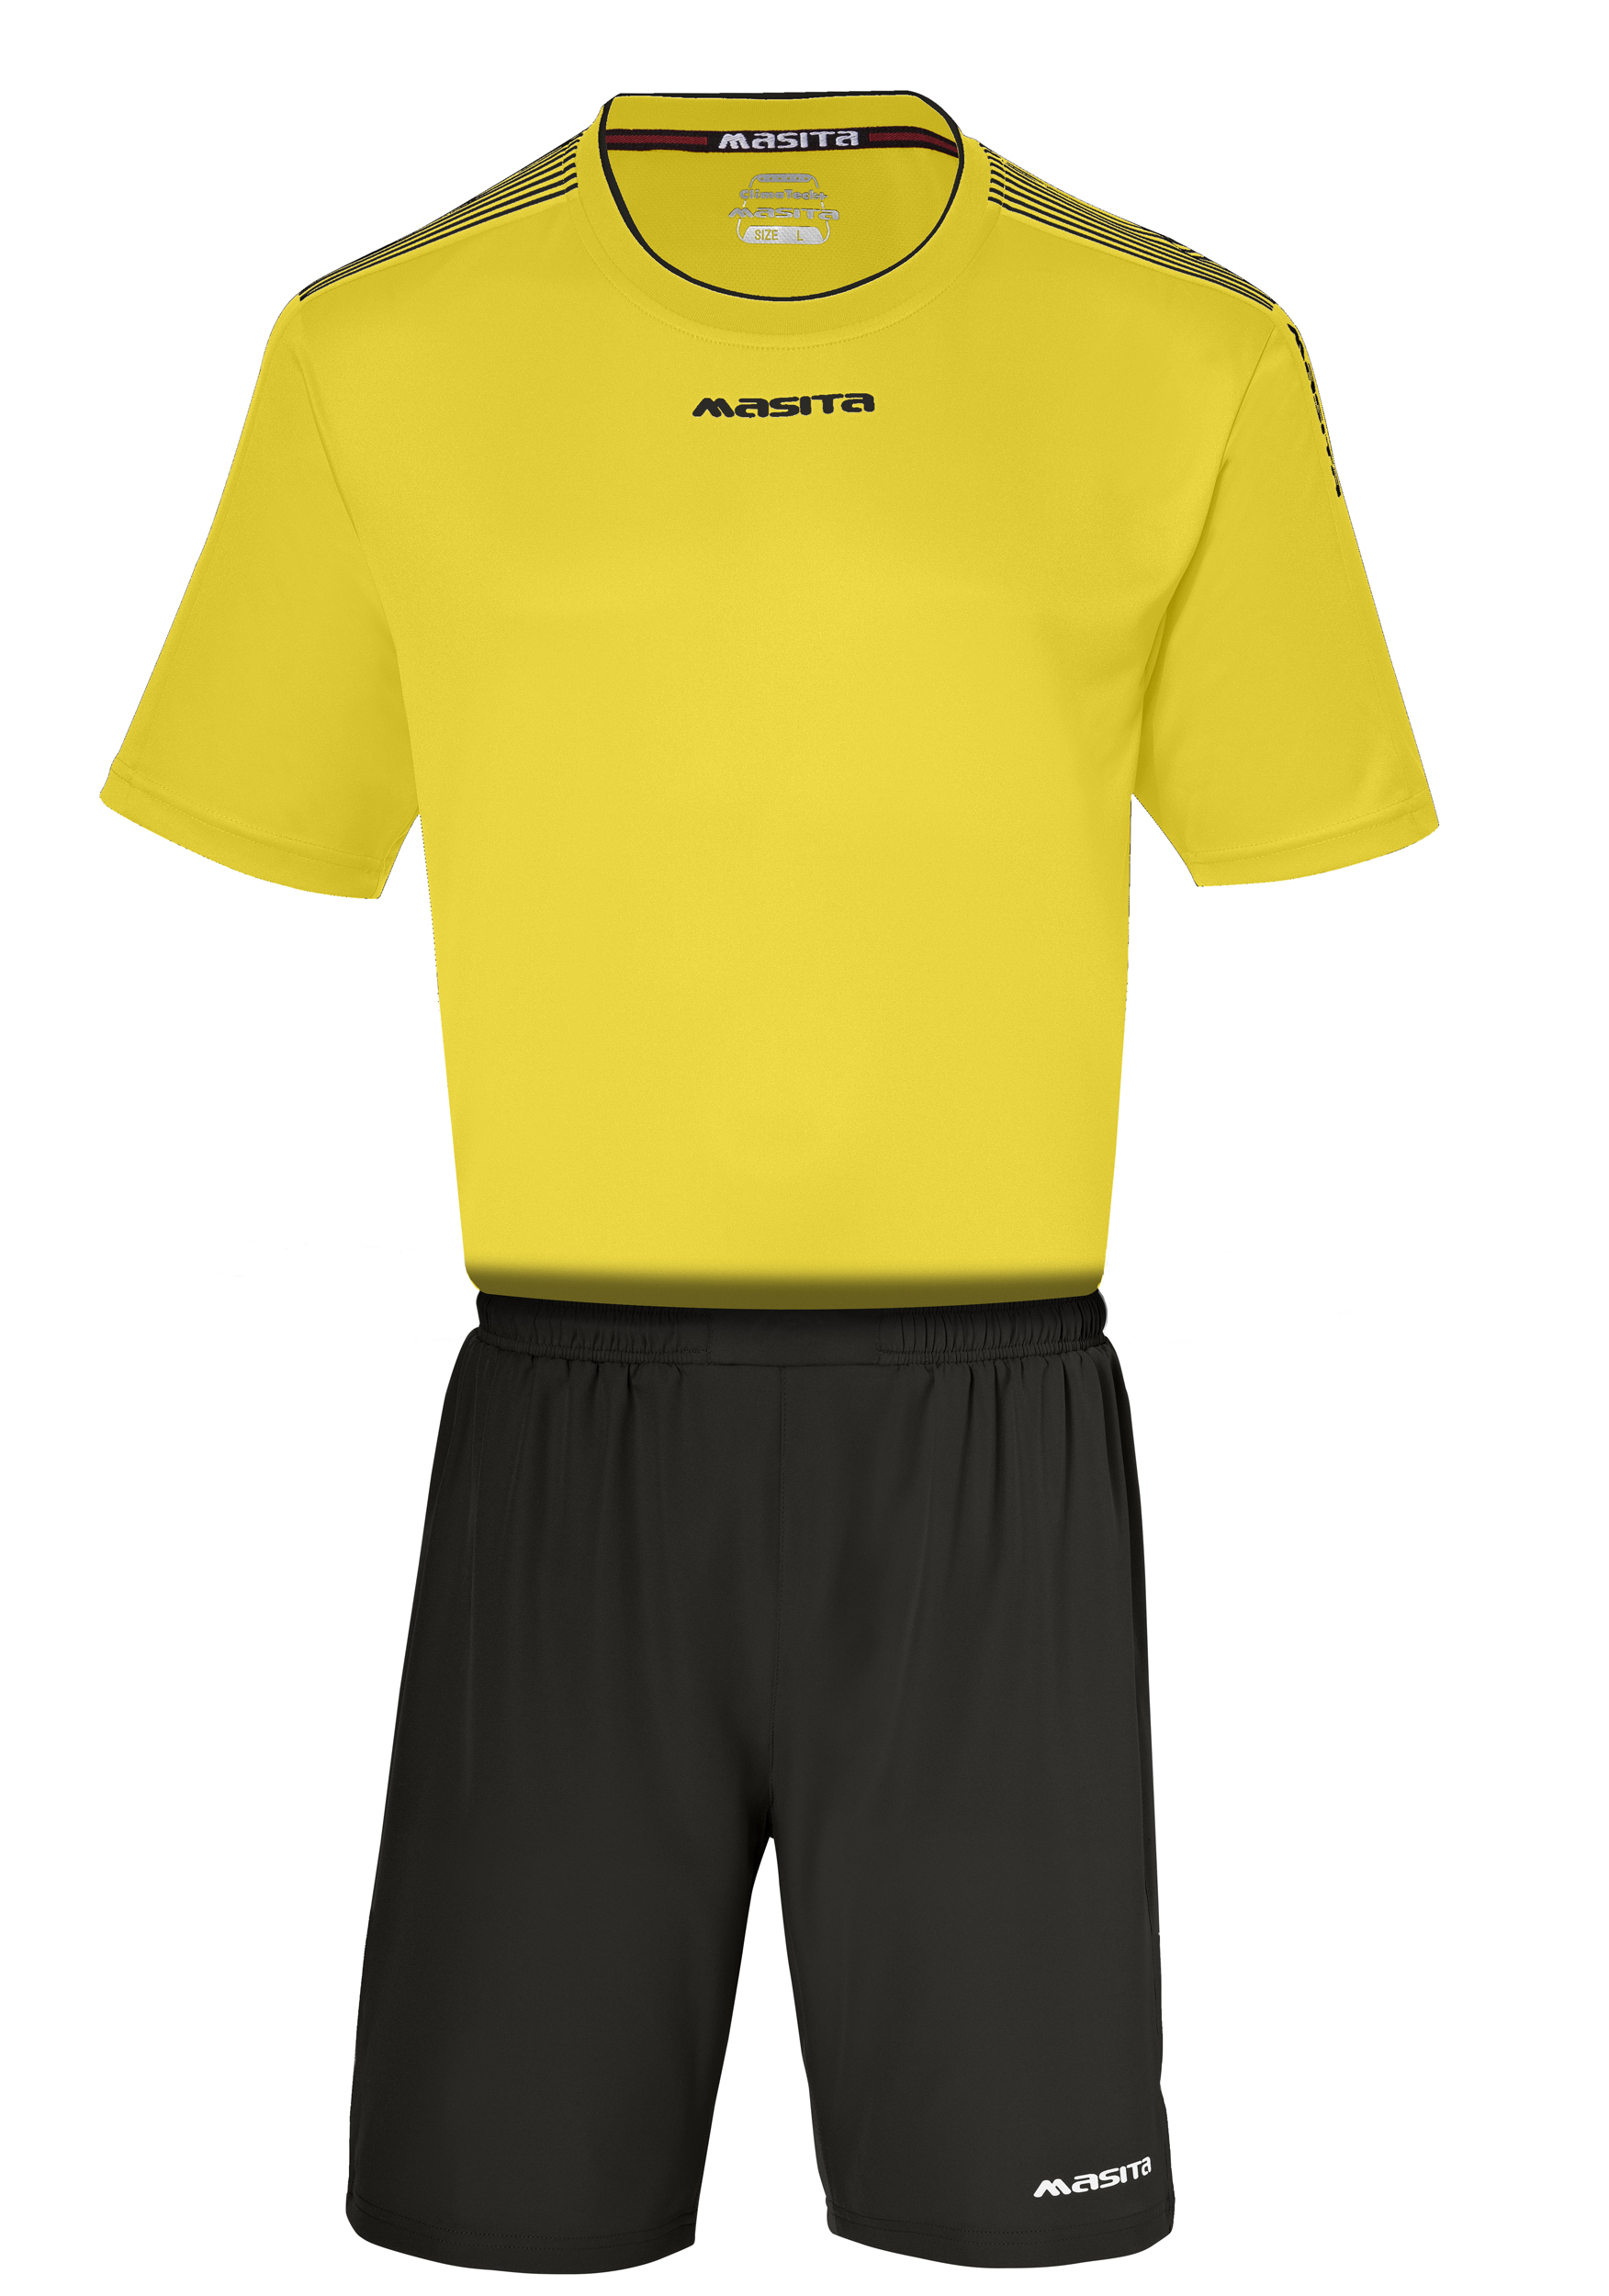 SportShirt Sevilla  Yellow / Black